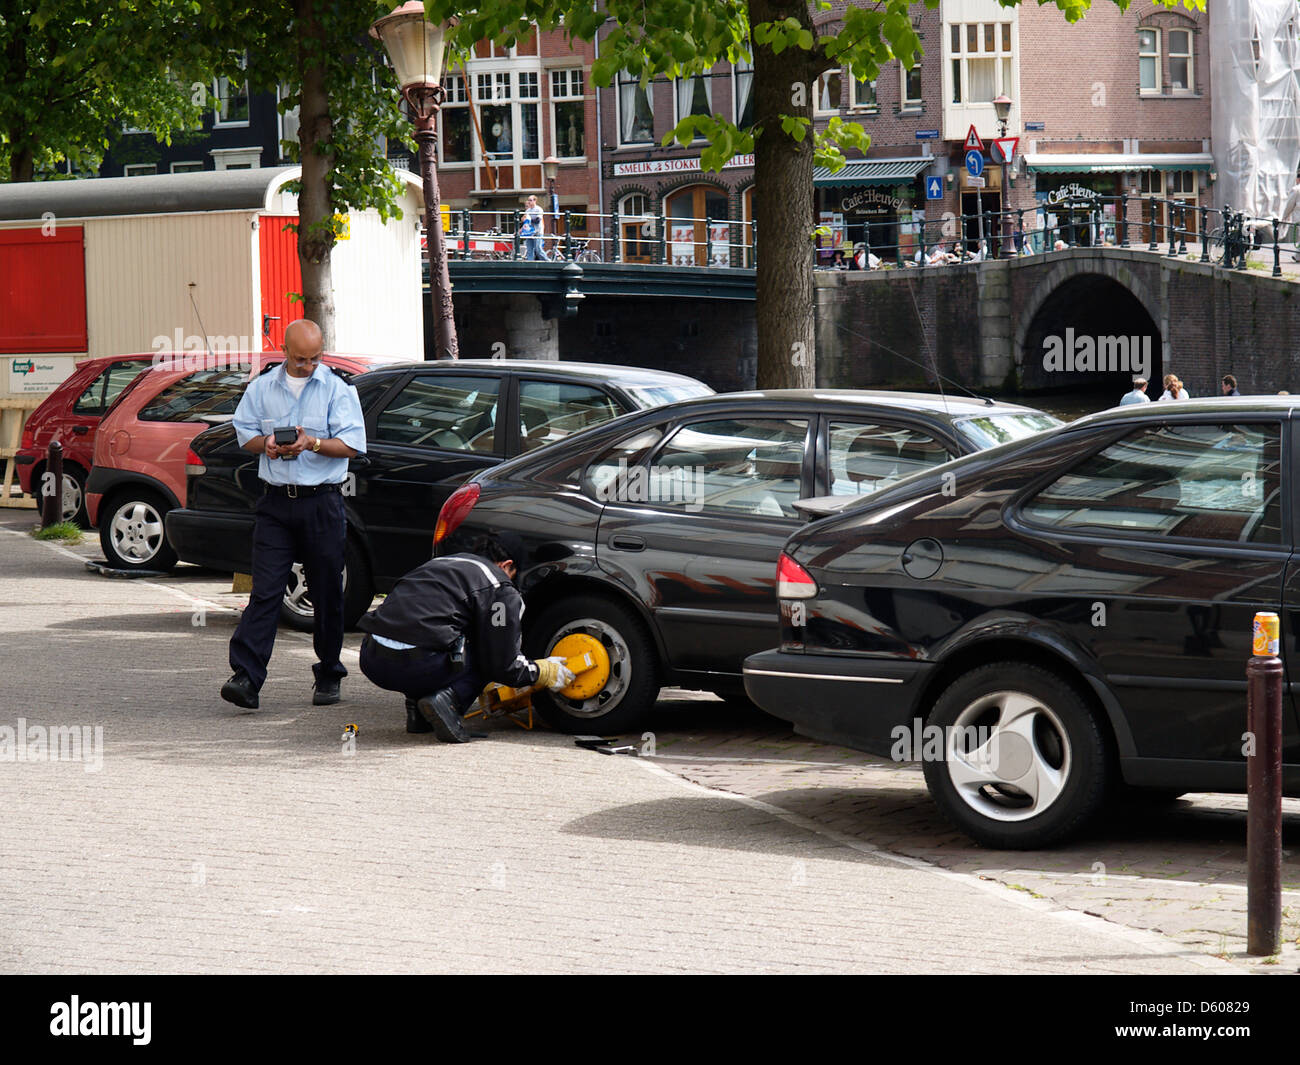 two parking attendants busy attaching a wheelclamp on the Prinsengracht canal, Amsterdam the Netherlands - Stock Image